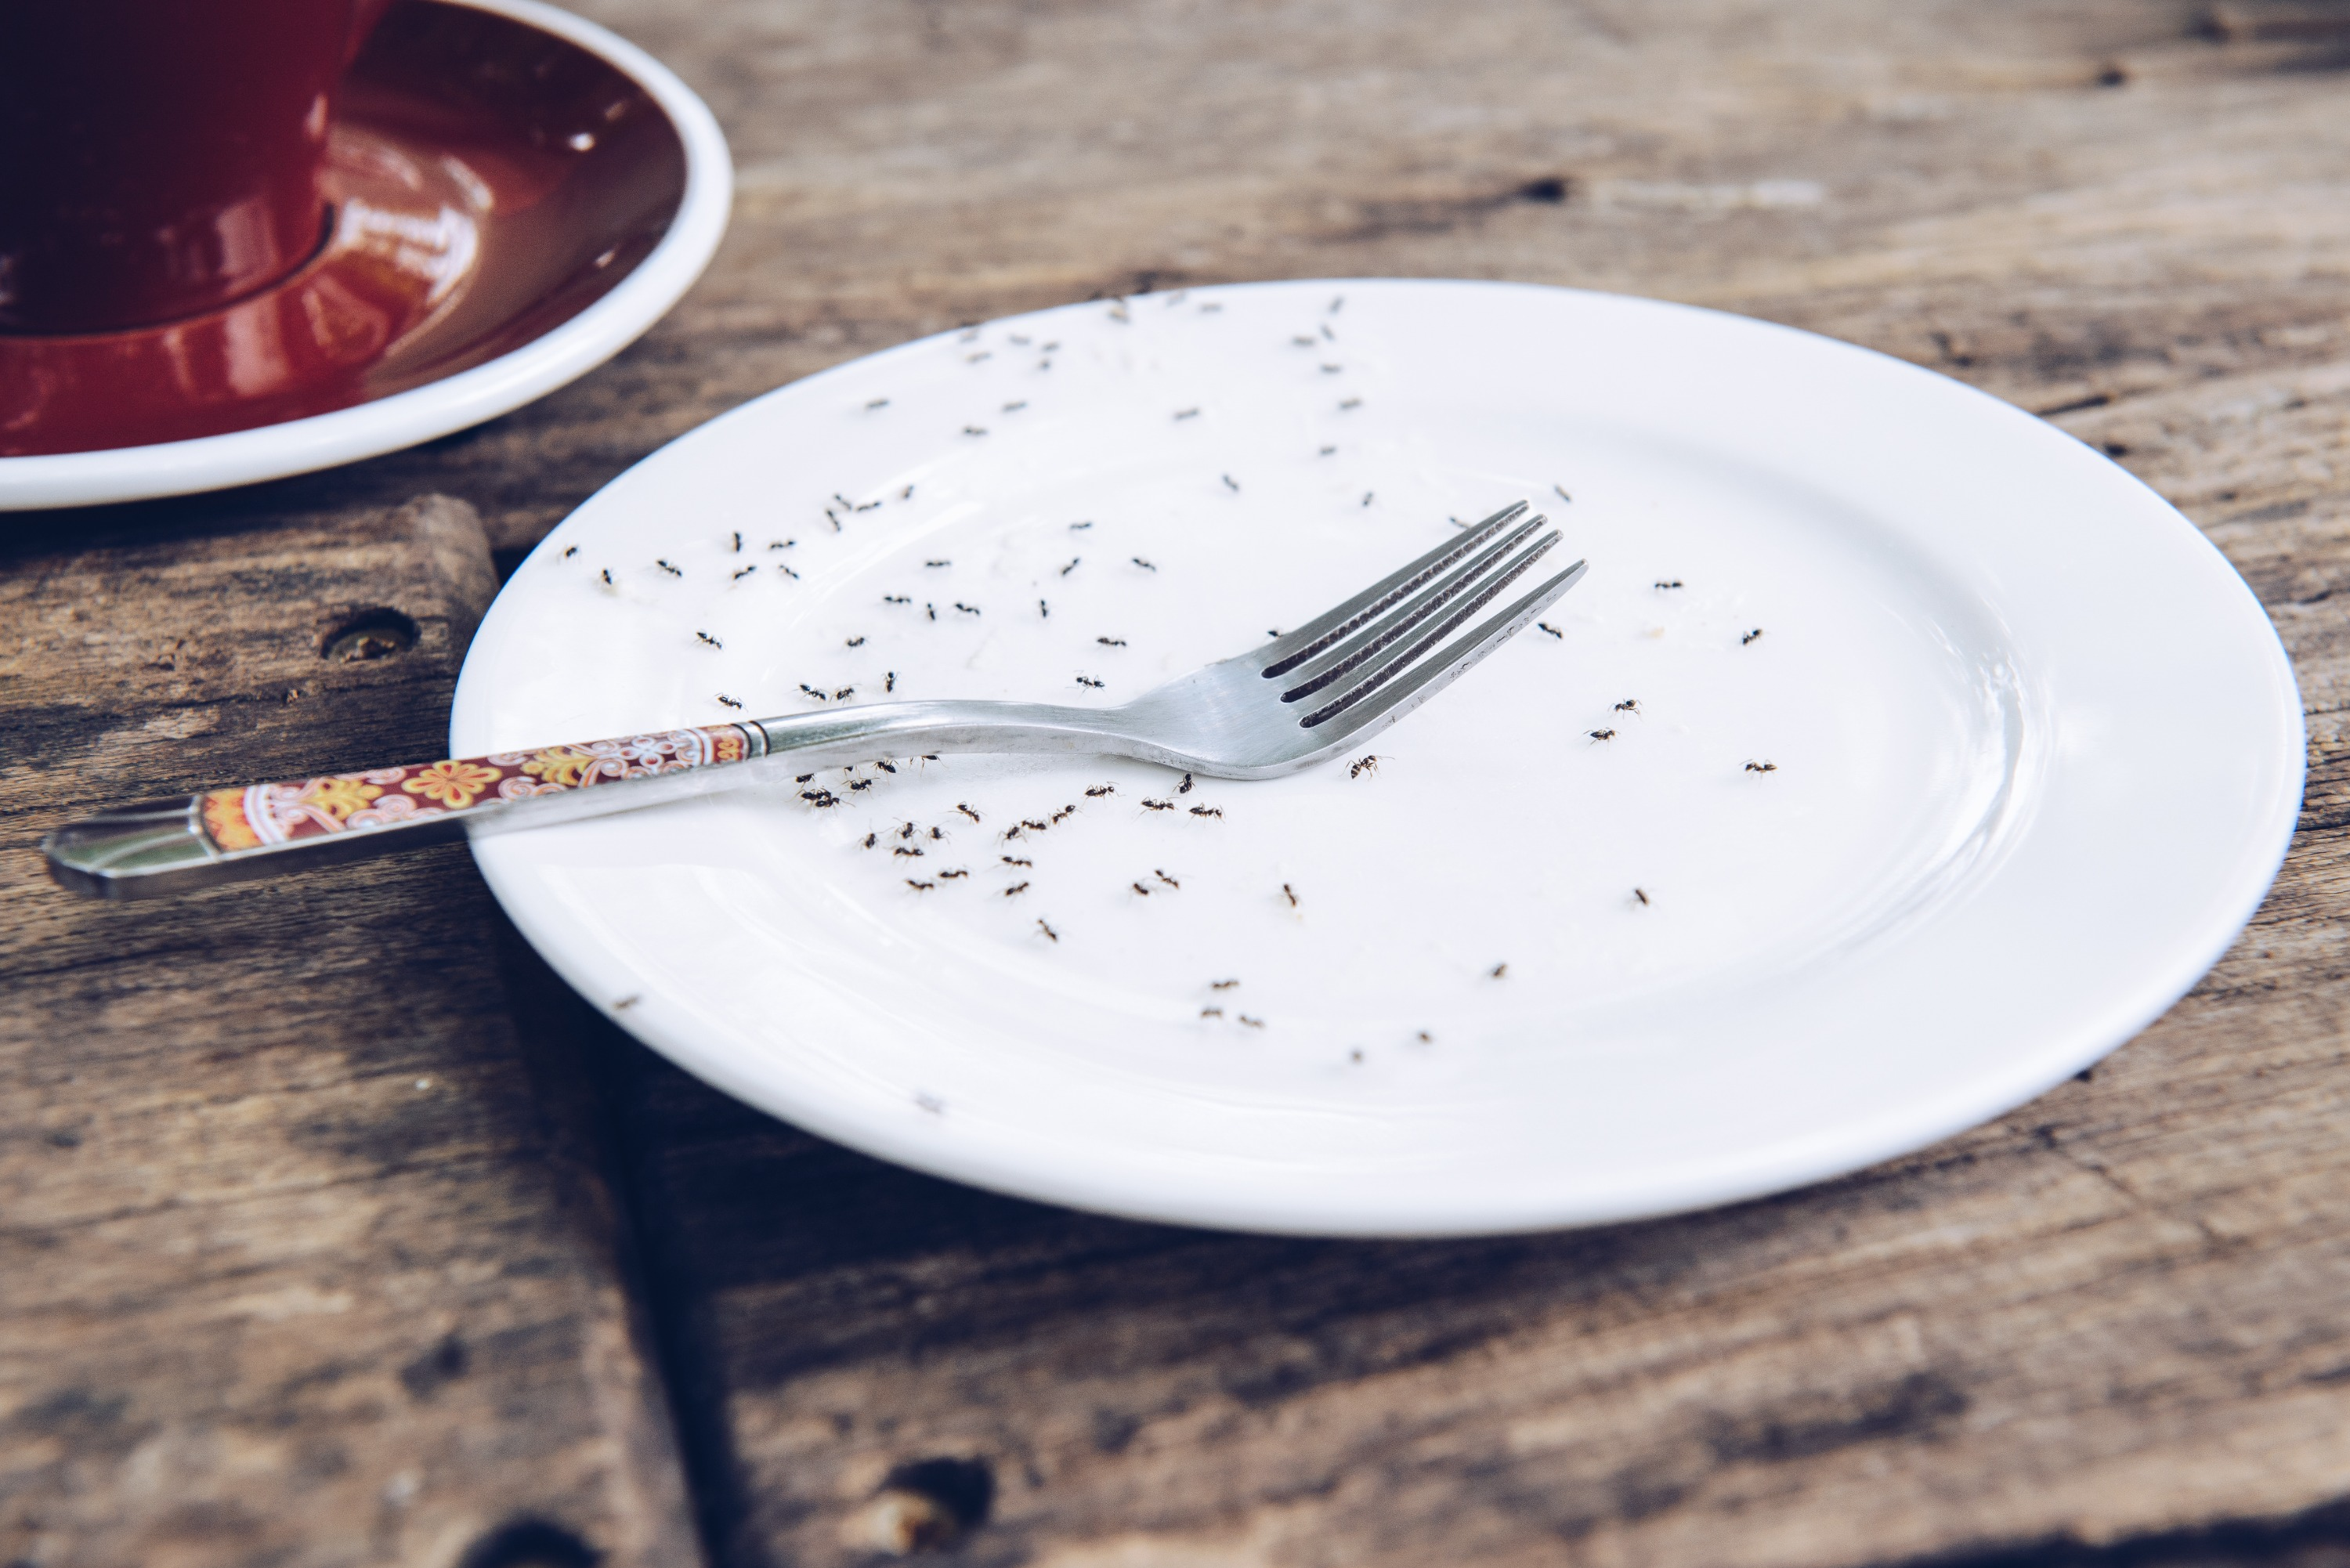 Ants on a white porcelain plate with a silver spoon on a wooden table near a red coffee mug.